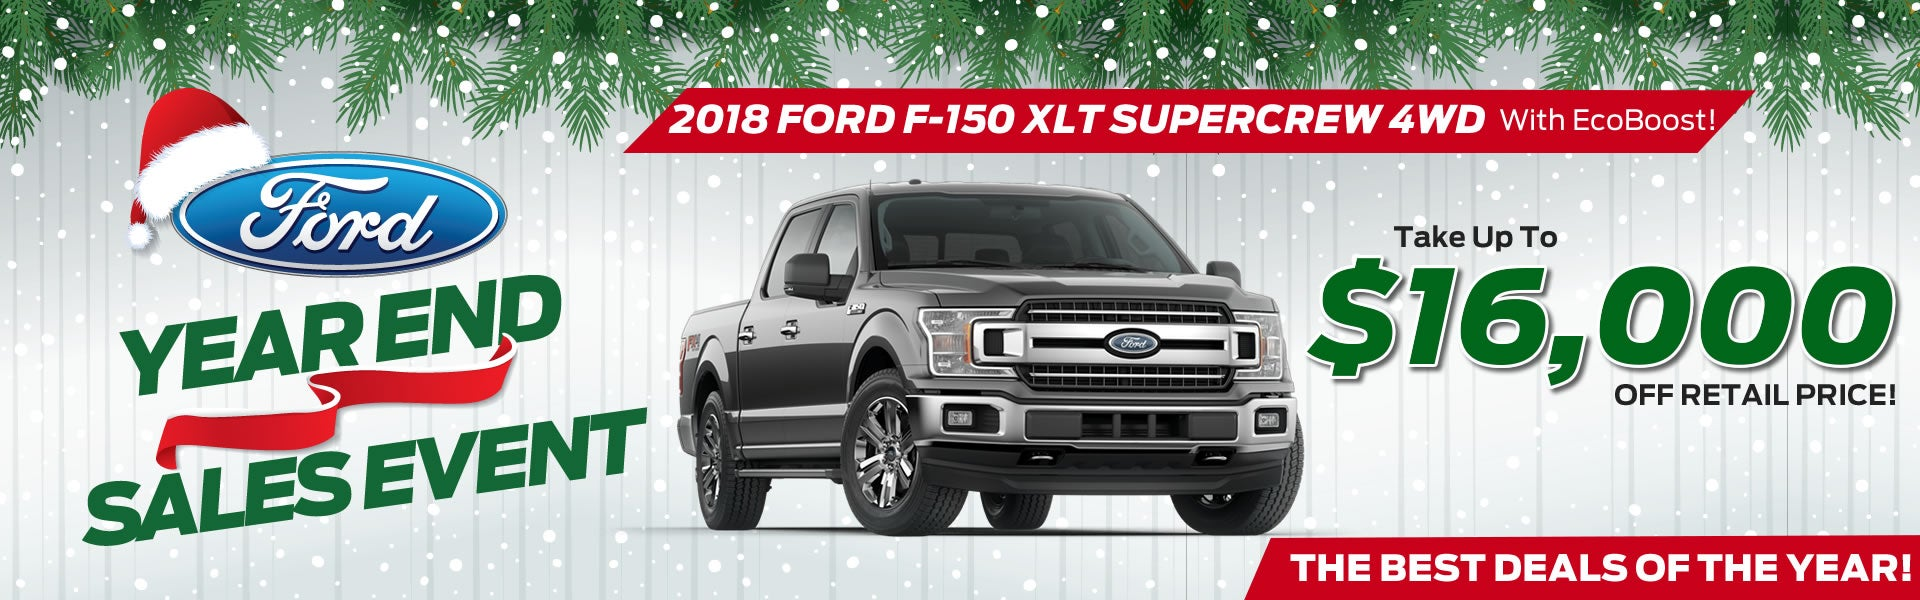 New 2018 ford f 150 supercrew xlt 4wd ecoboost